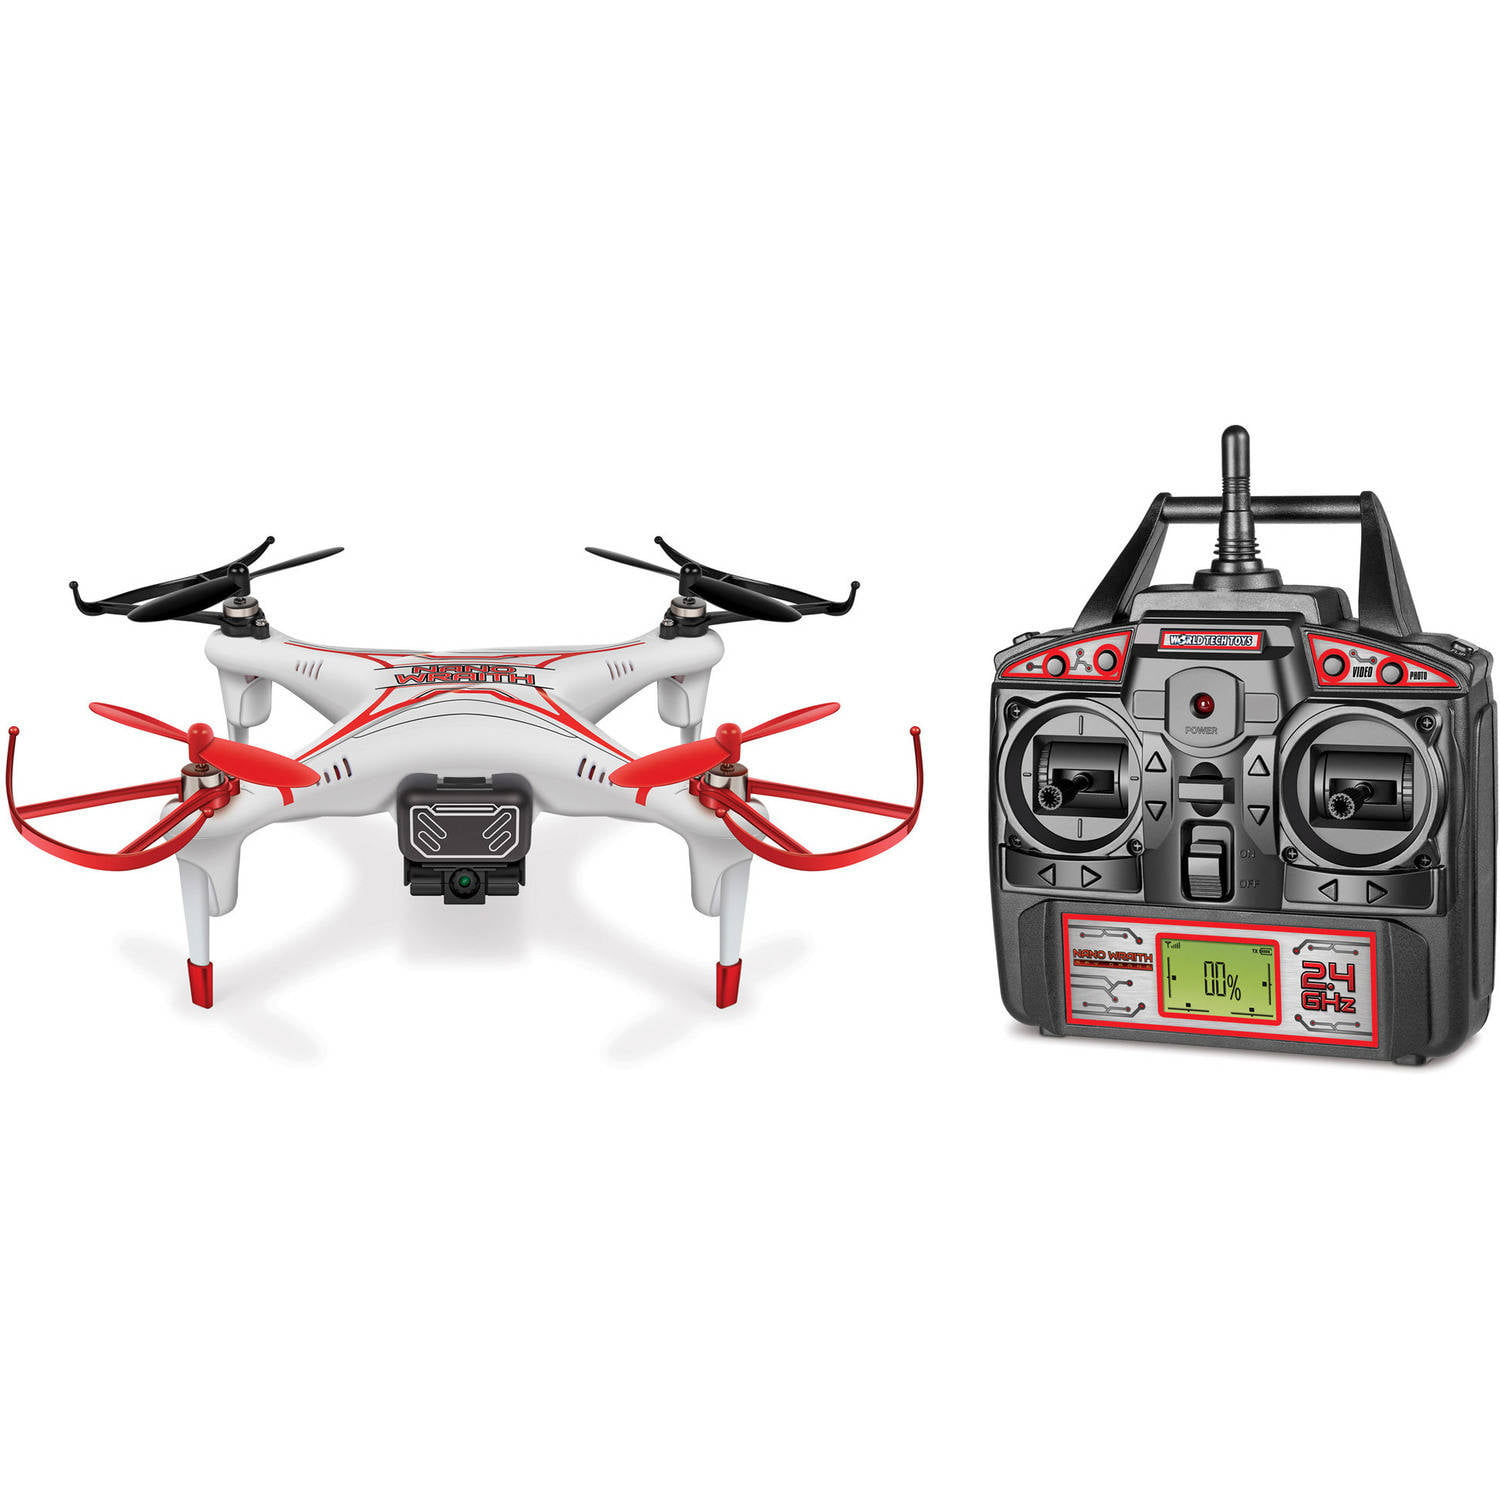 Nano Wraith SPY Drone 4.5-Channel Video Camera 2.4GHz R C Quadcopter by WORLD TECH ELITE